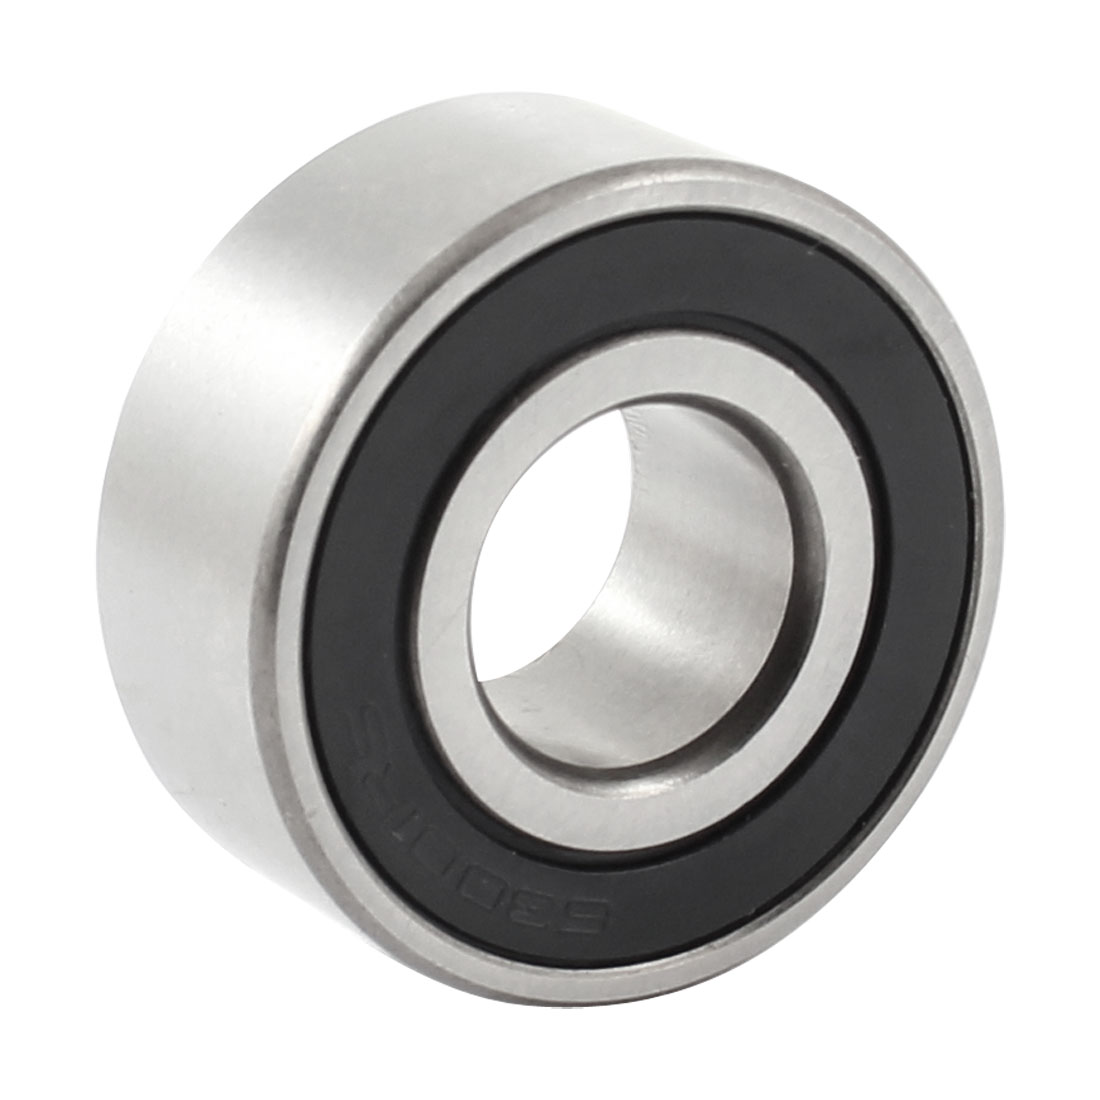 Sealed Deep Groove Ball Bearing 28mm x 12mm x 12mm 63001